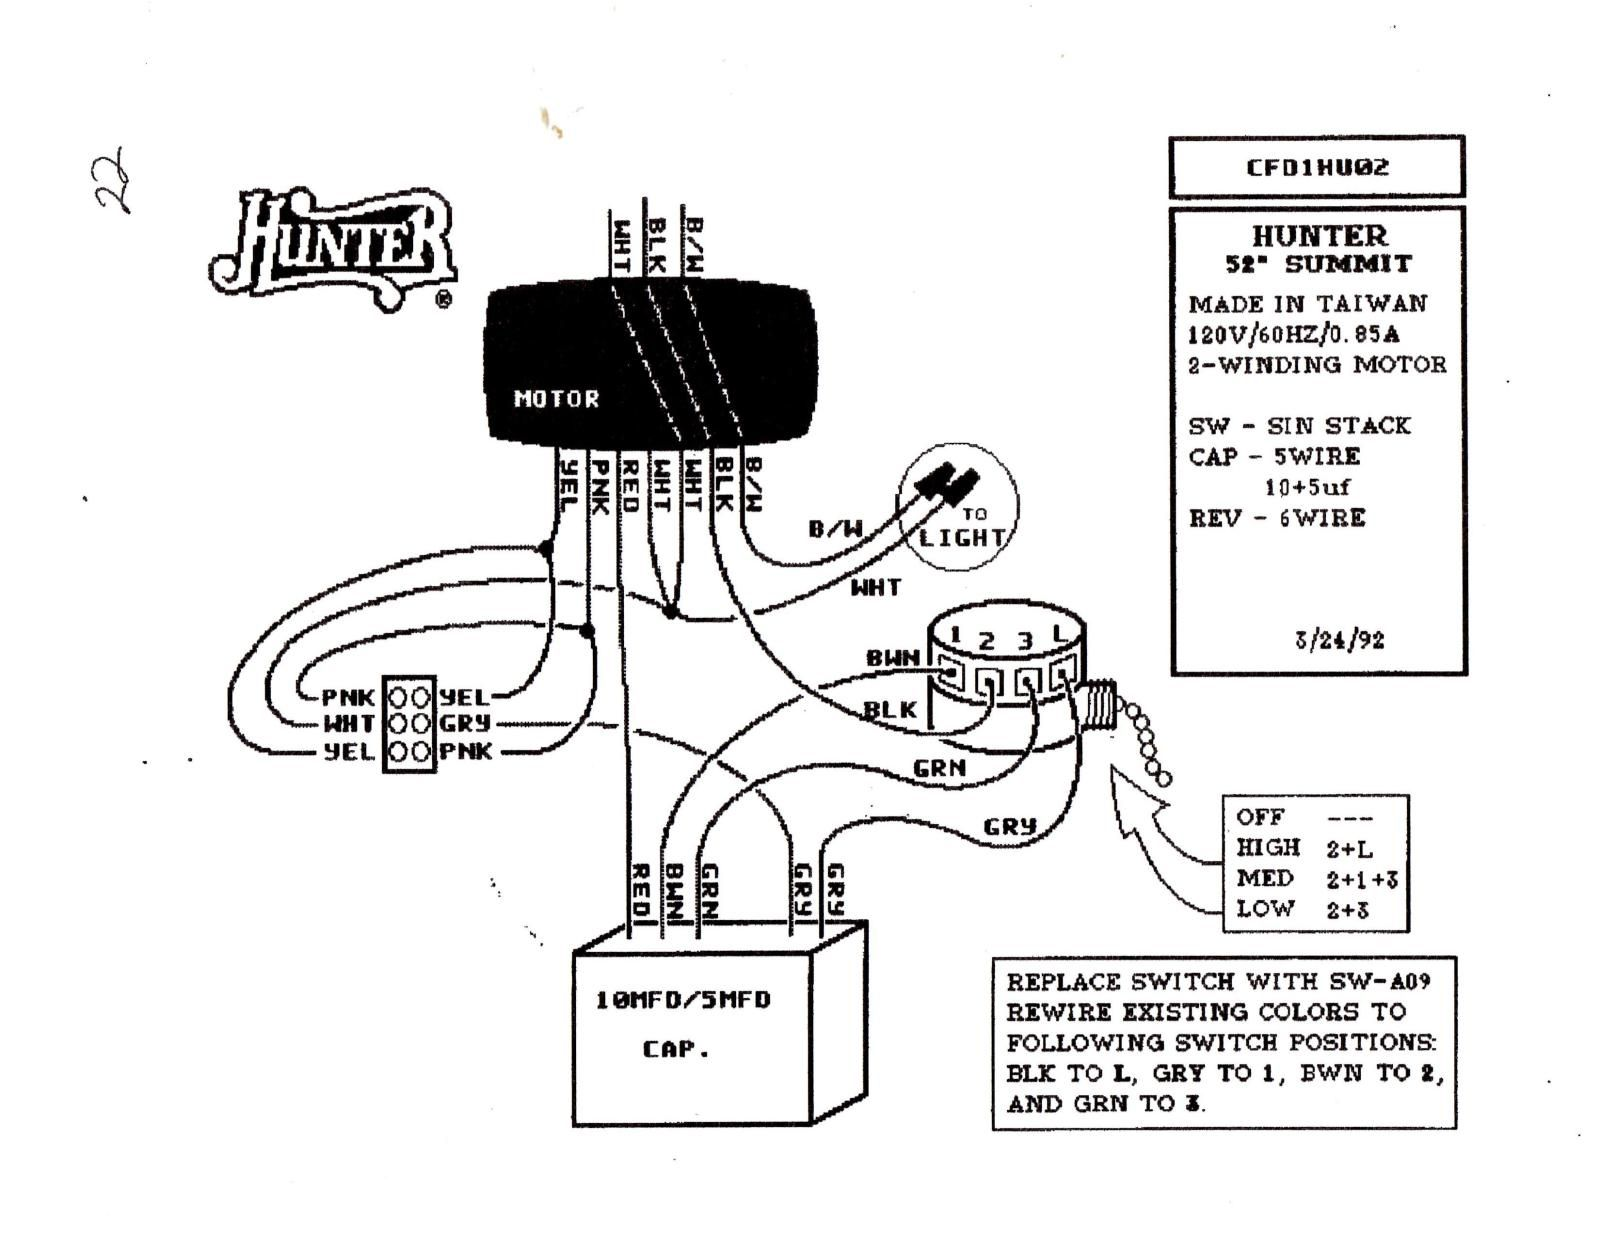 hight resolution of hunter ceiling fan speed switch wiring diagram switch pinterest hunter fan wiring diagram for fan and remote hunter ceiling fan switch light wiring diagram